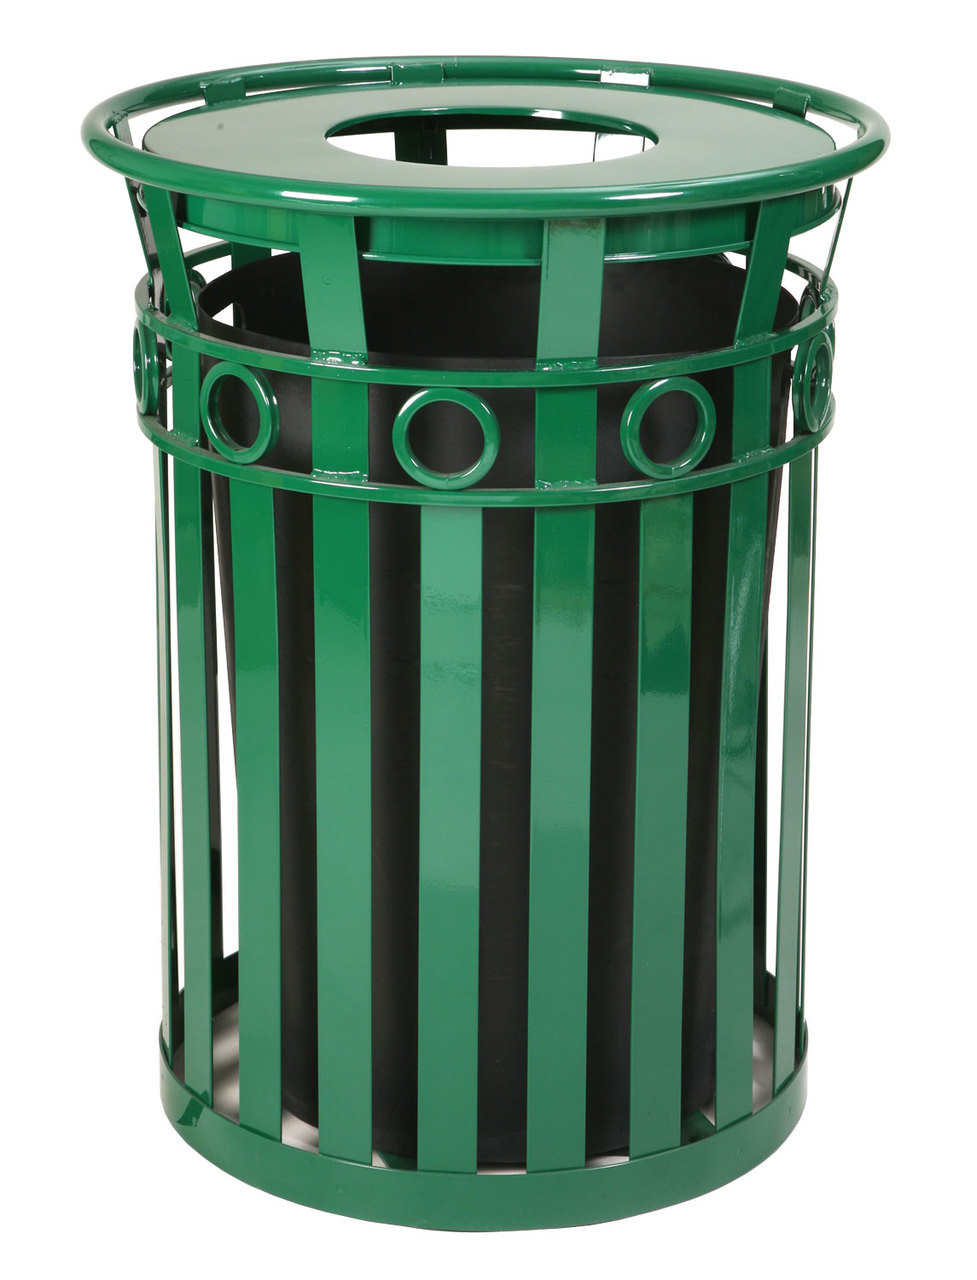 36 Gallon Oakley M3600-R-FT-GN Outdoor Waste Receptacle Green